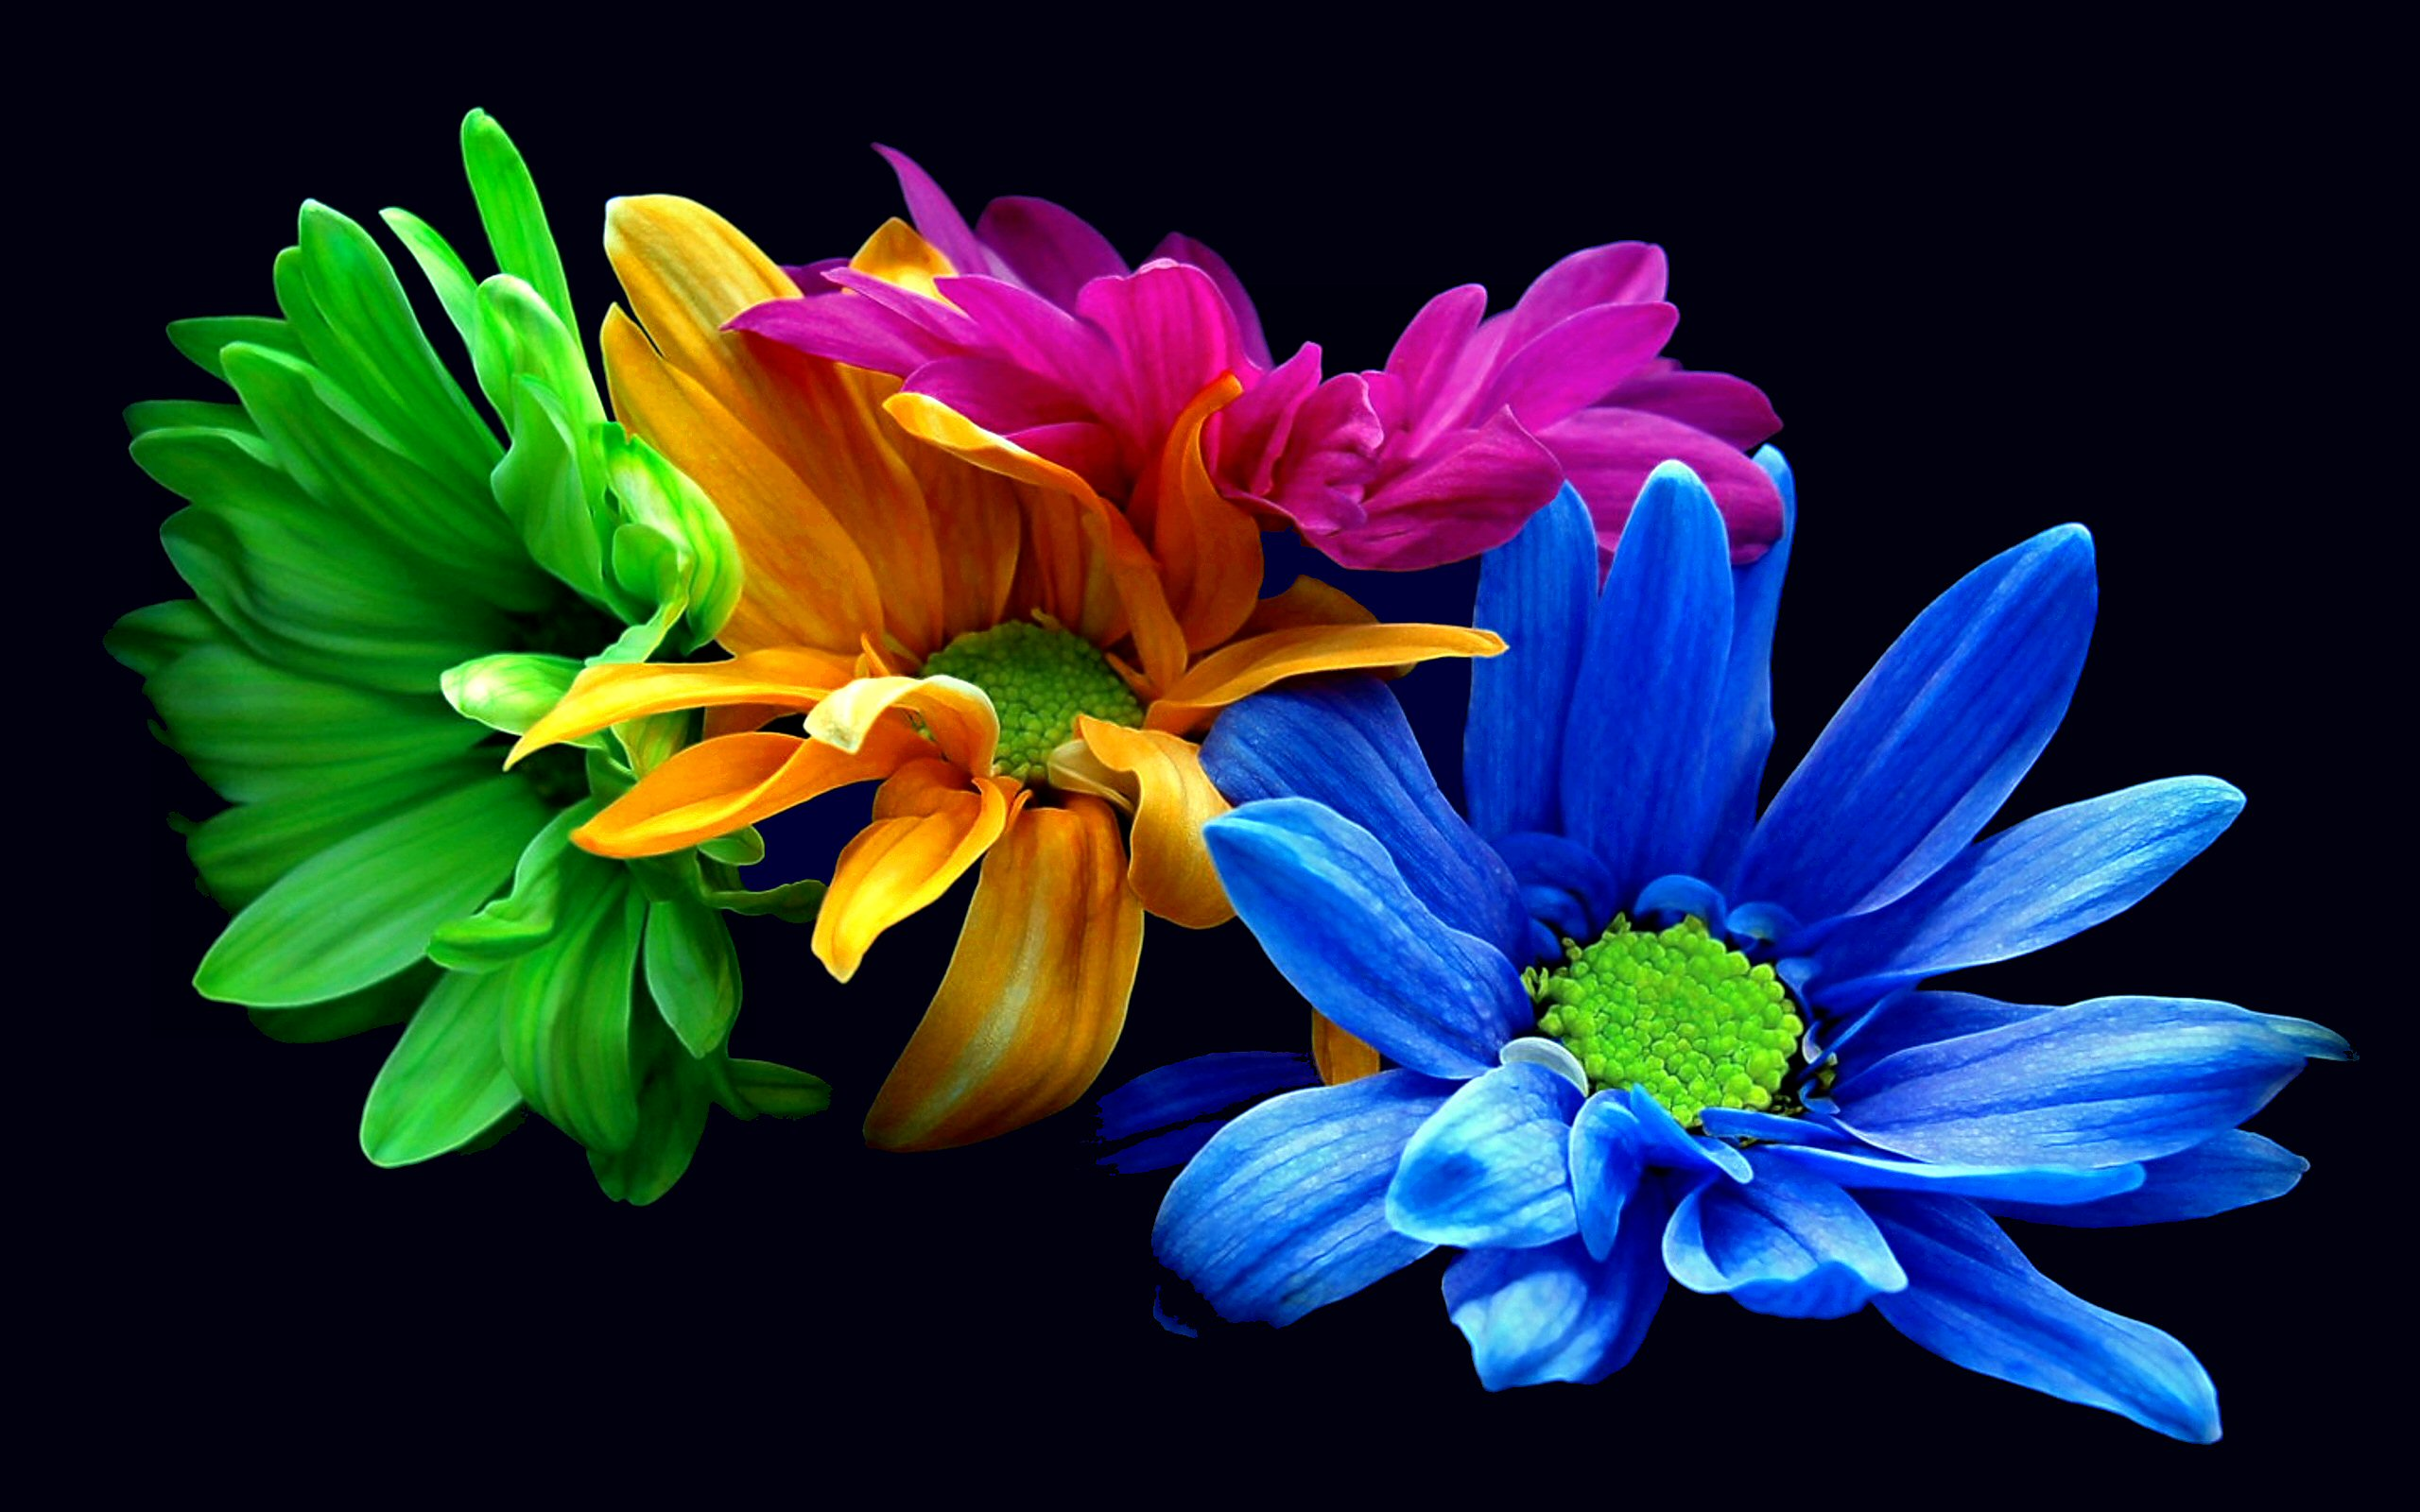 Wallpaper Colorful Flowers